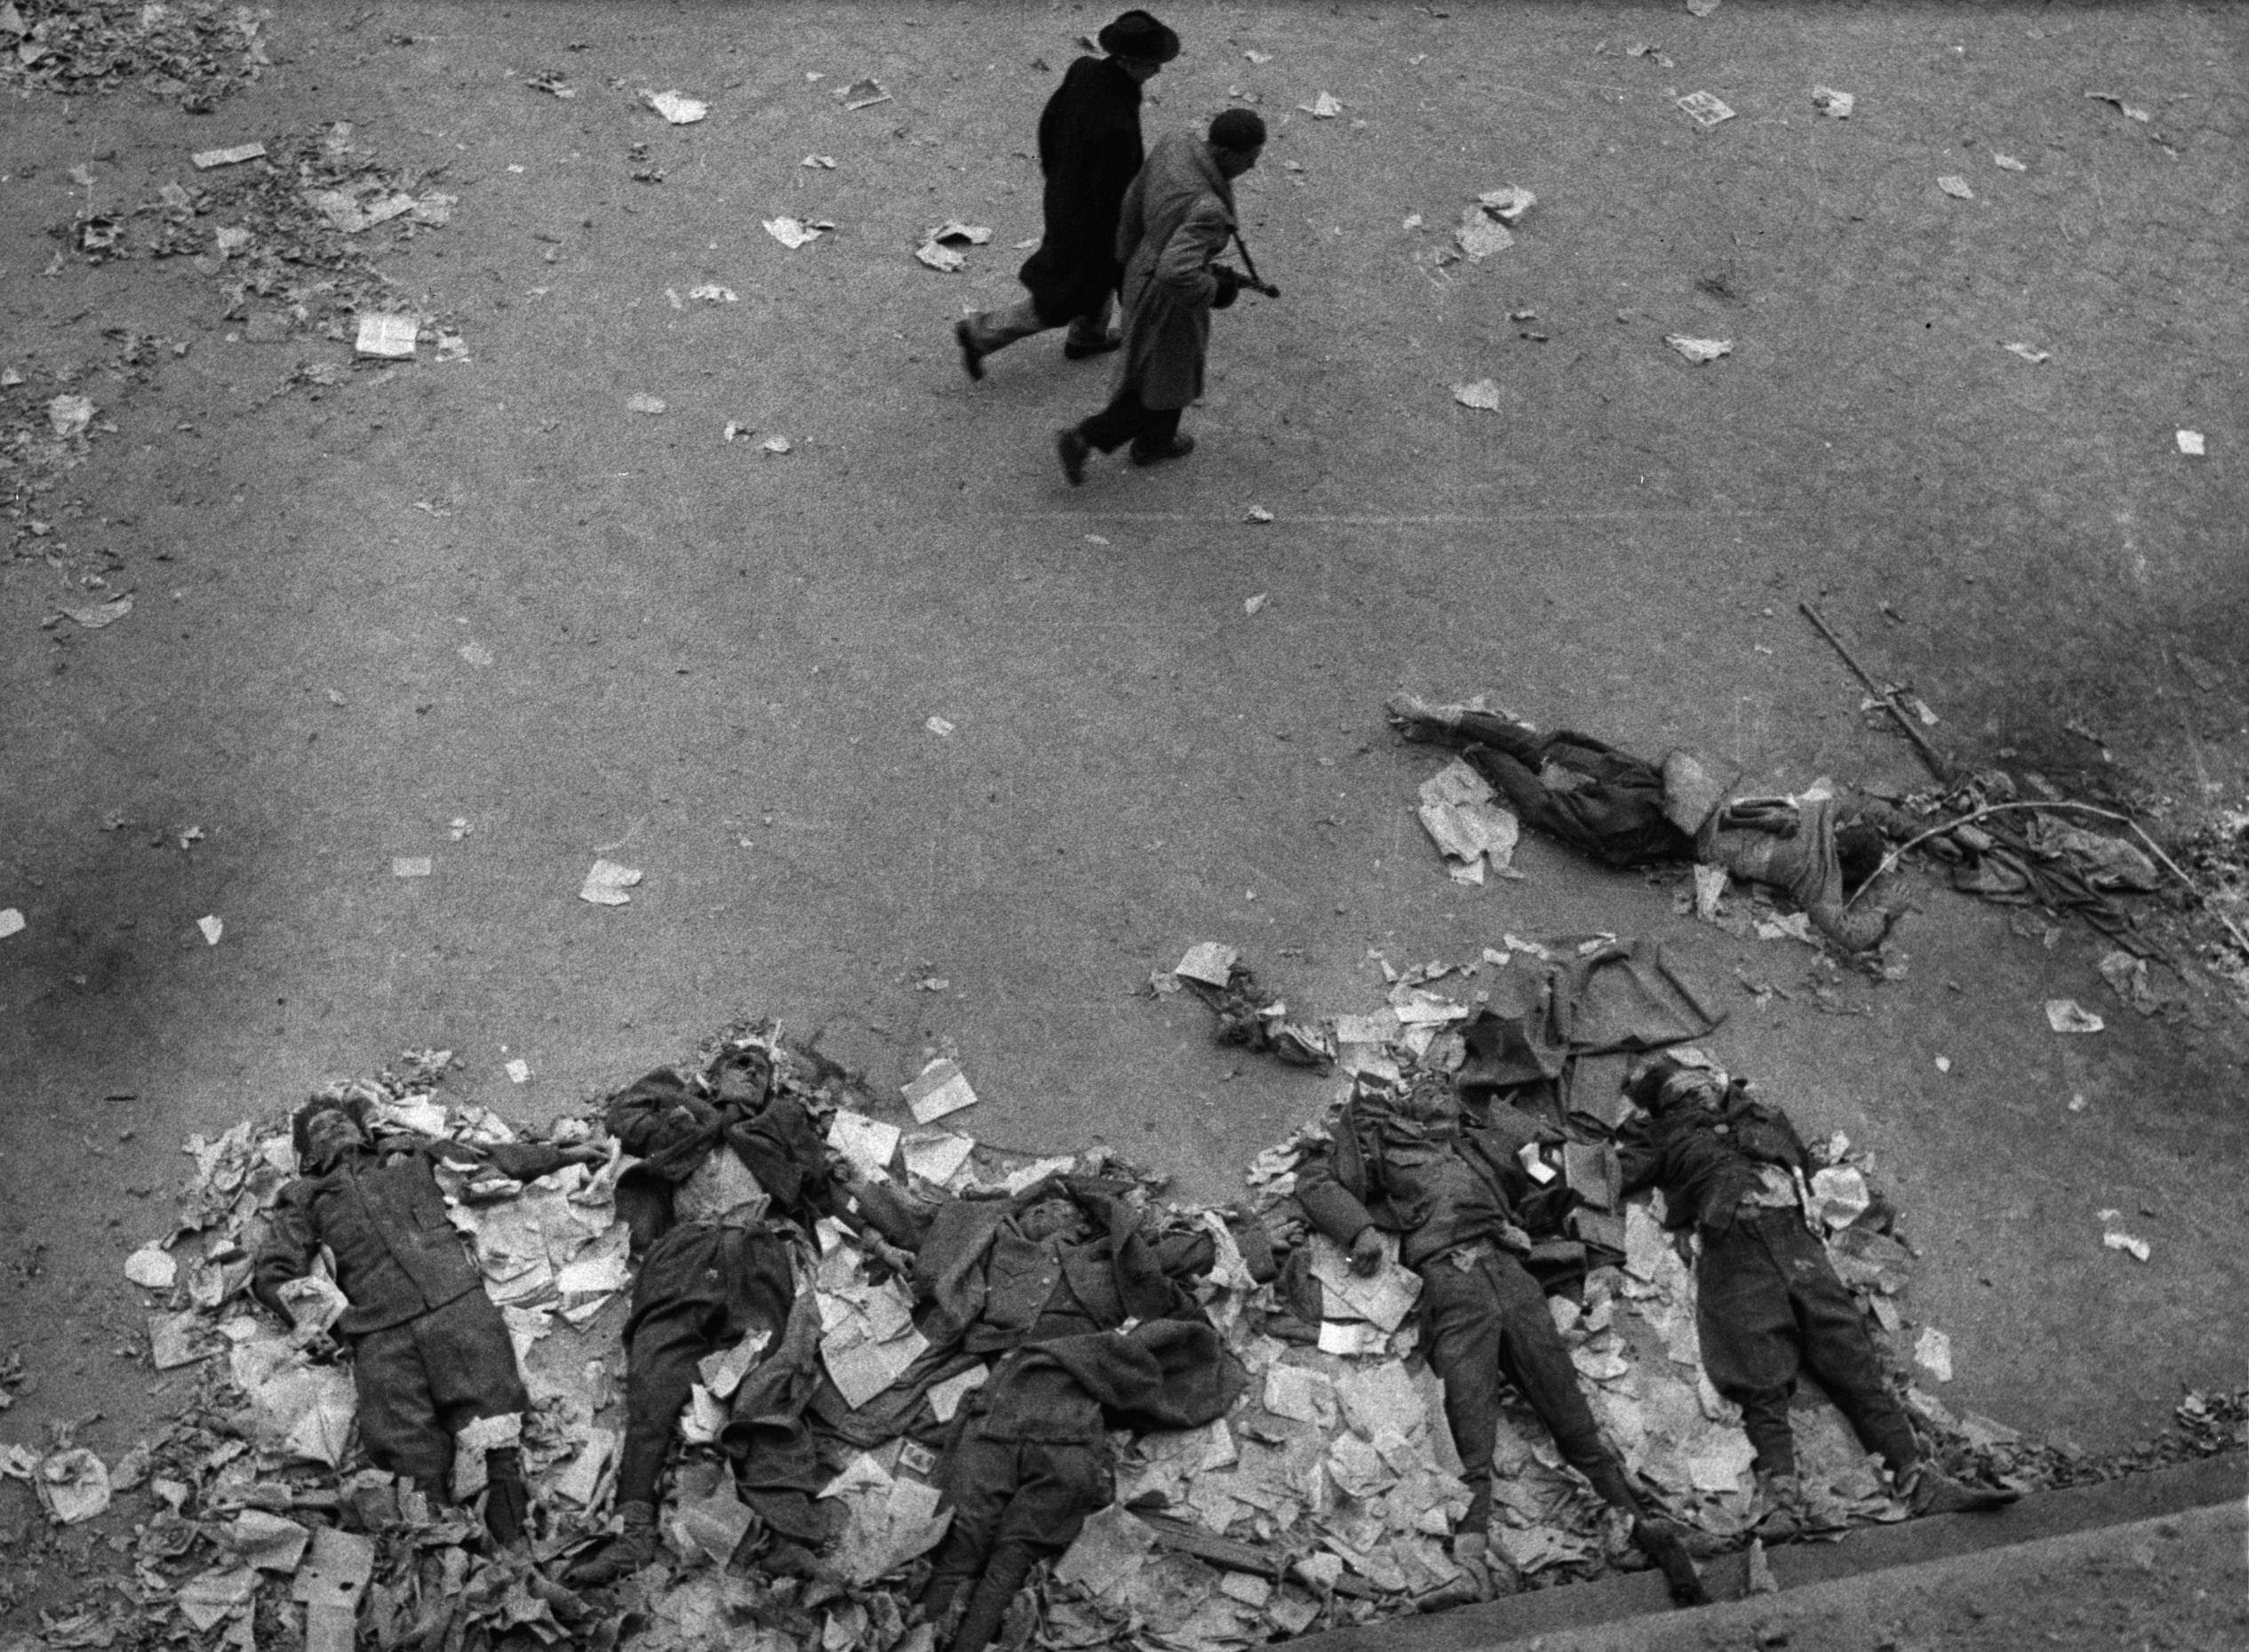 Two Hungarian revolutionaries walk past the bodies of Soviet secret policemen killed during the Hungarian Revolution, 1956.